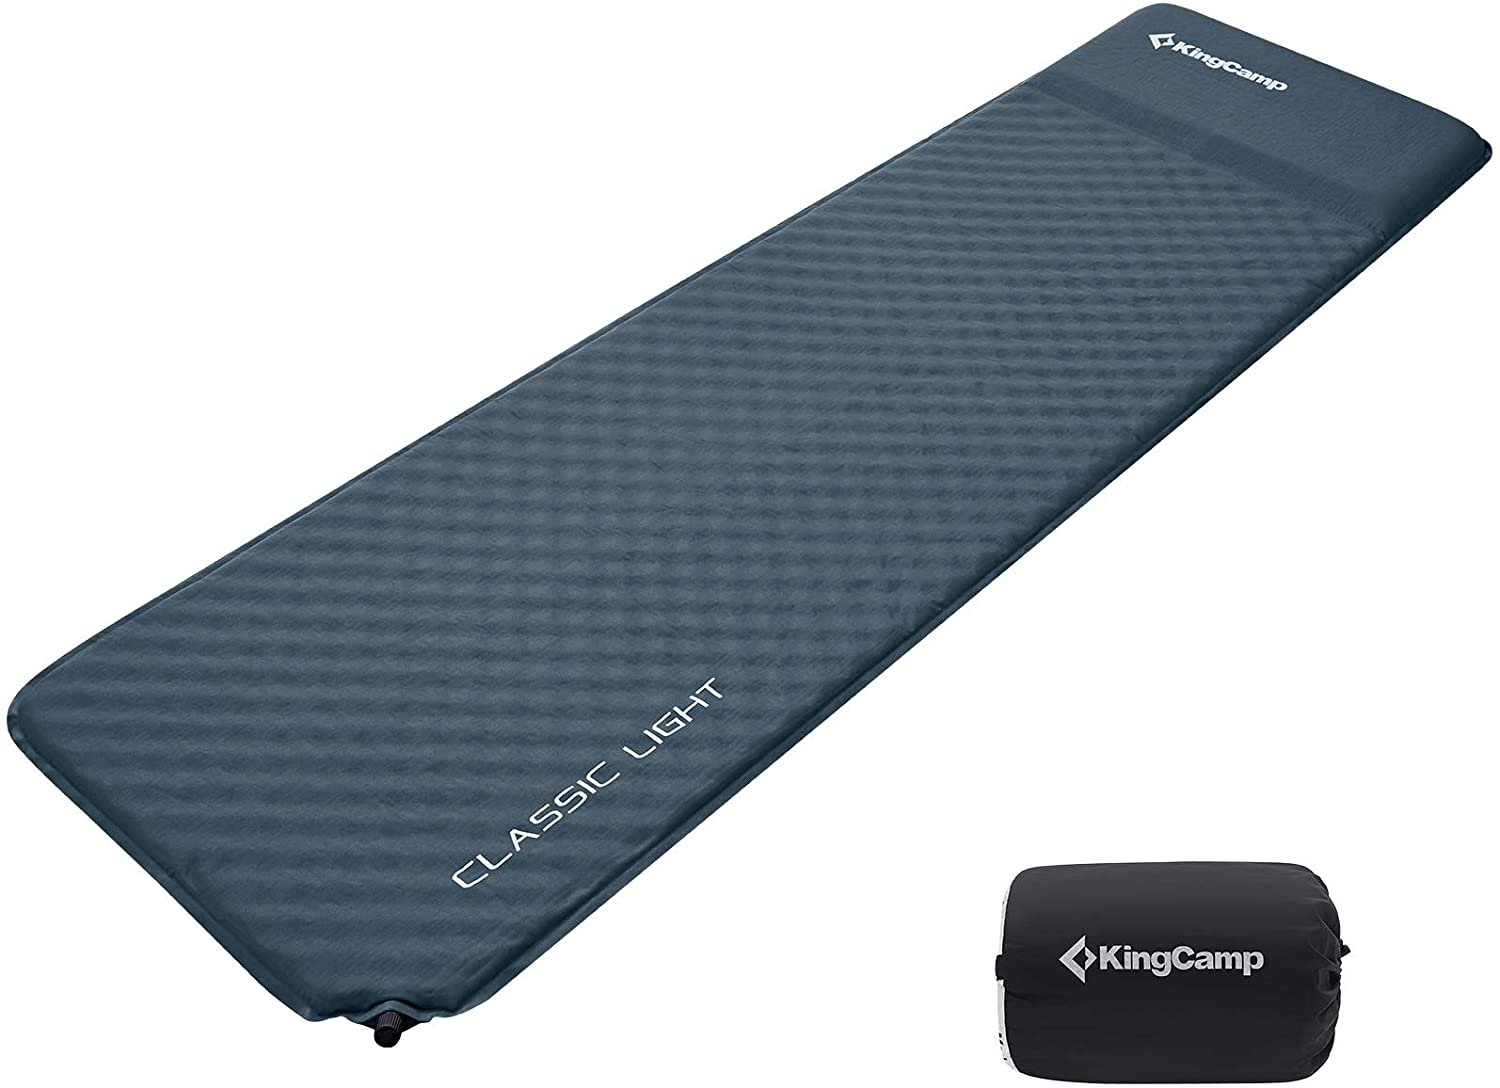 image showing the KingCamp Comfort Self-Inflating Camping Pad with Built-In Pillow